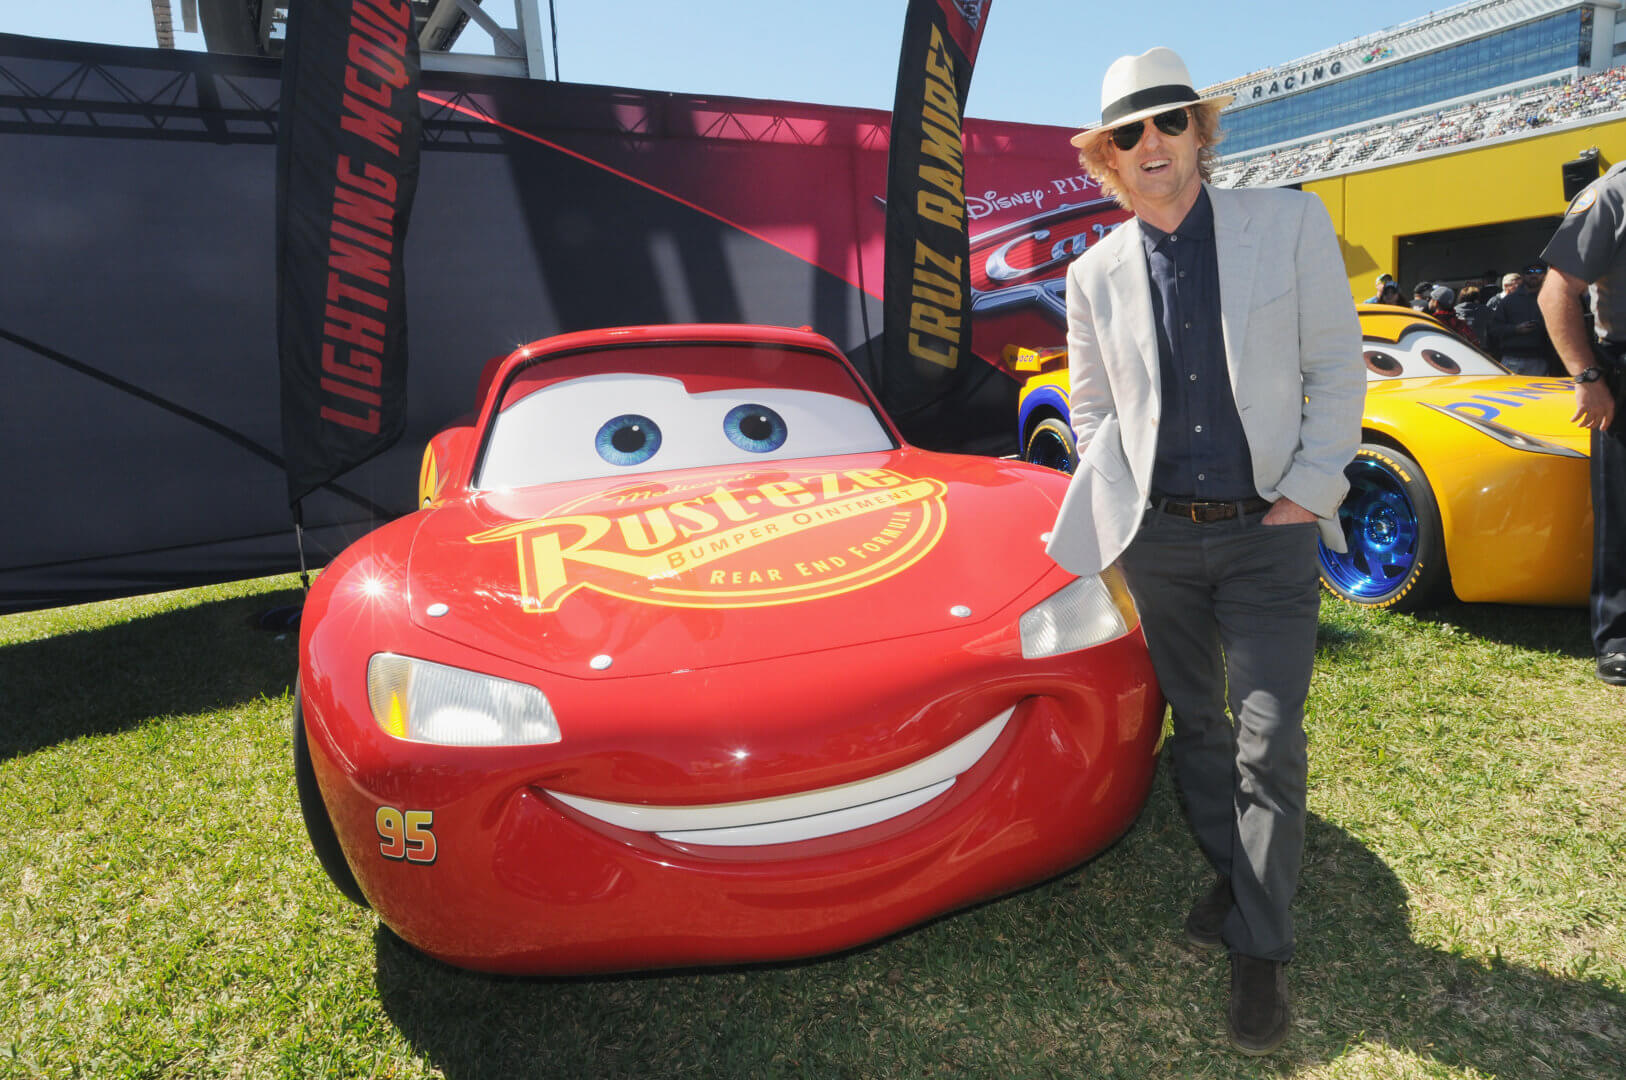 video new extended look at quotcars 3quot debuts at daytona 500